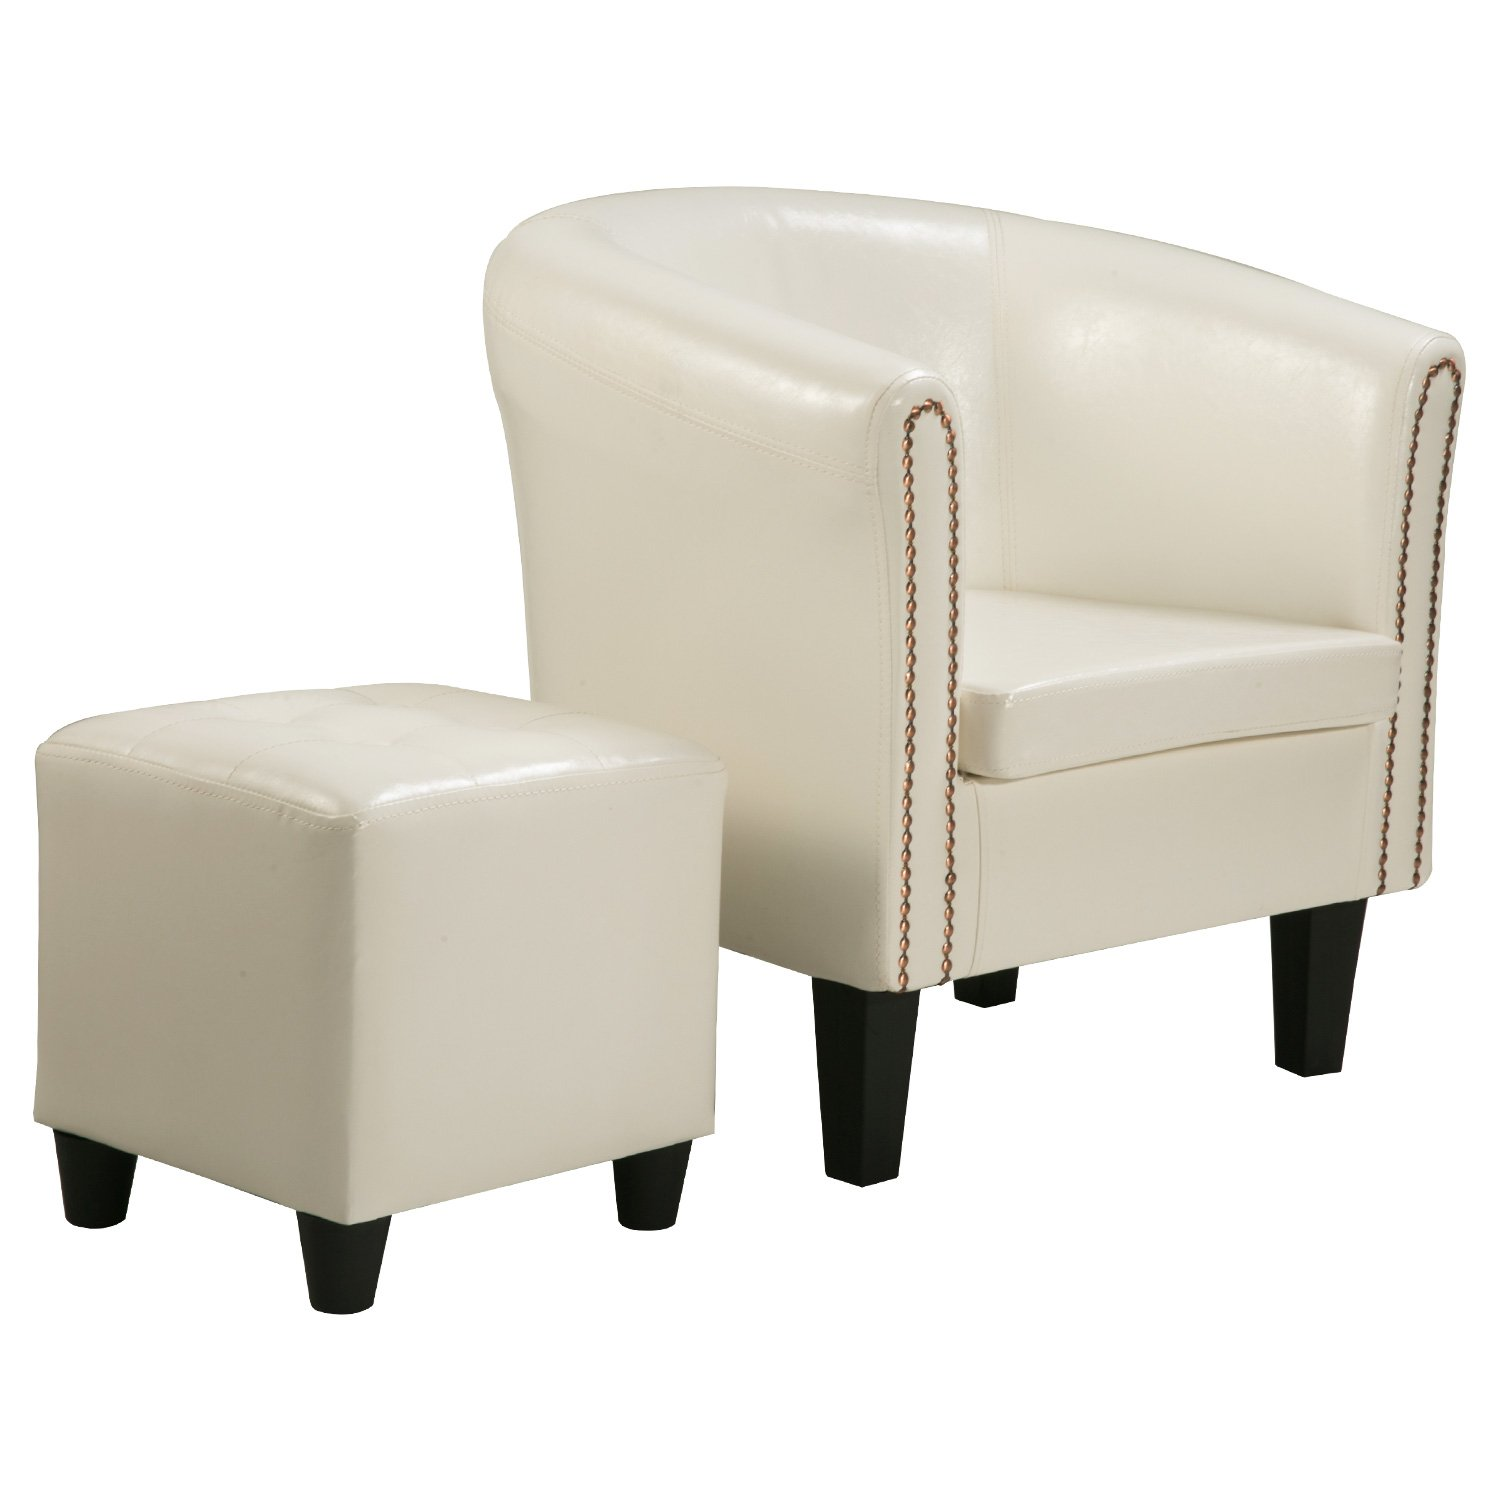 Harper&Bright designs Armchair Upholstered Living Room Club Chair with PU Leather and Ottoman(White) by Harper&Bright Designs (Image #2)